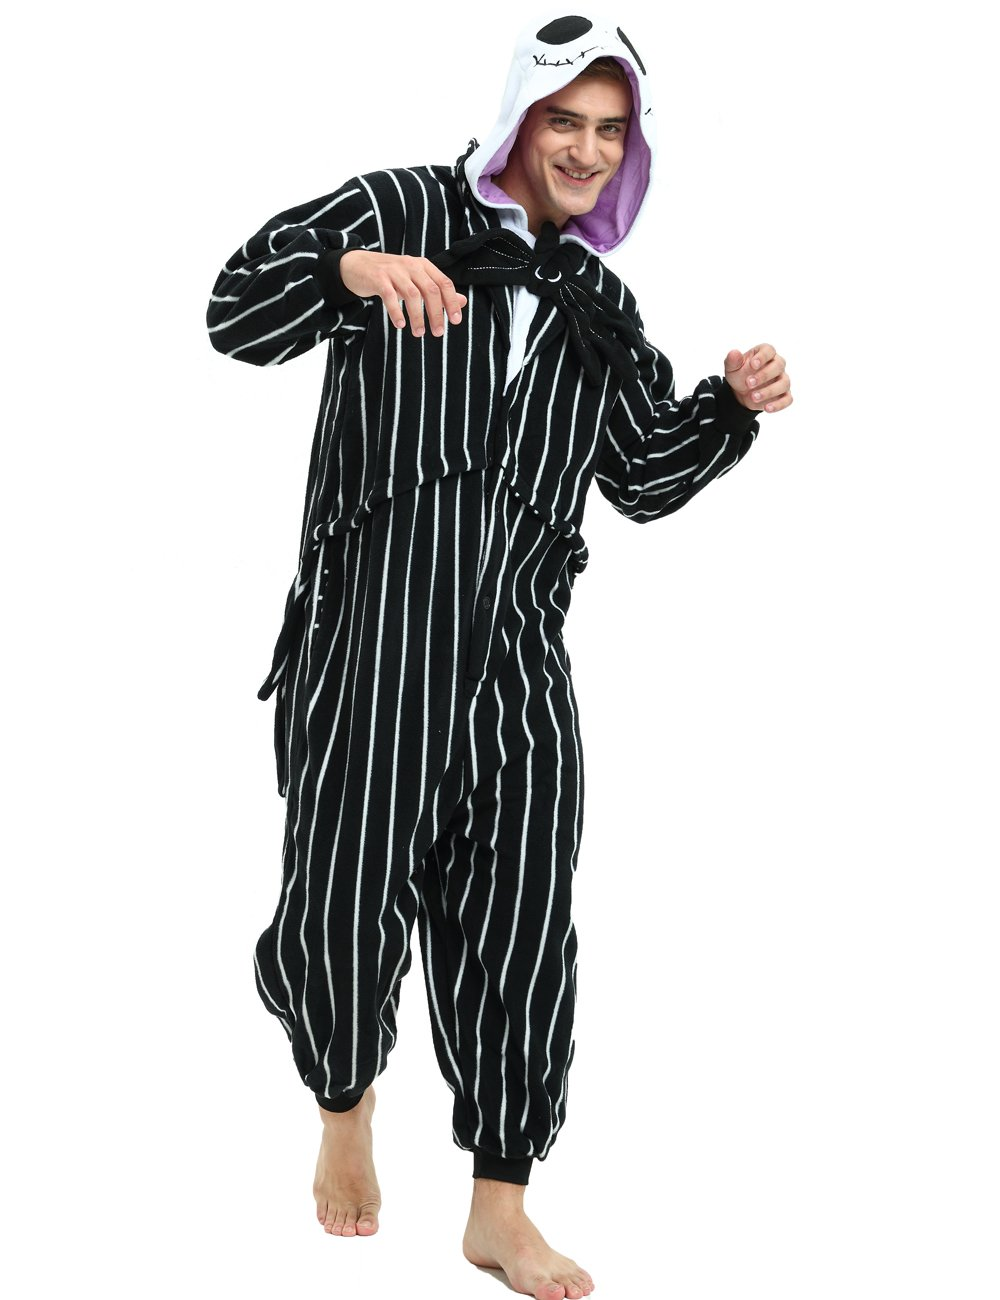 c77d1ebd5ffa7 This Jack Skellington Onesie is a Great costume or just for lounging around  the house.